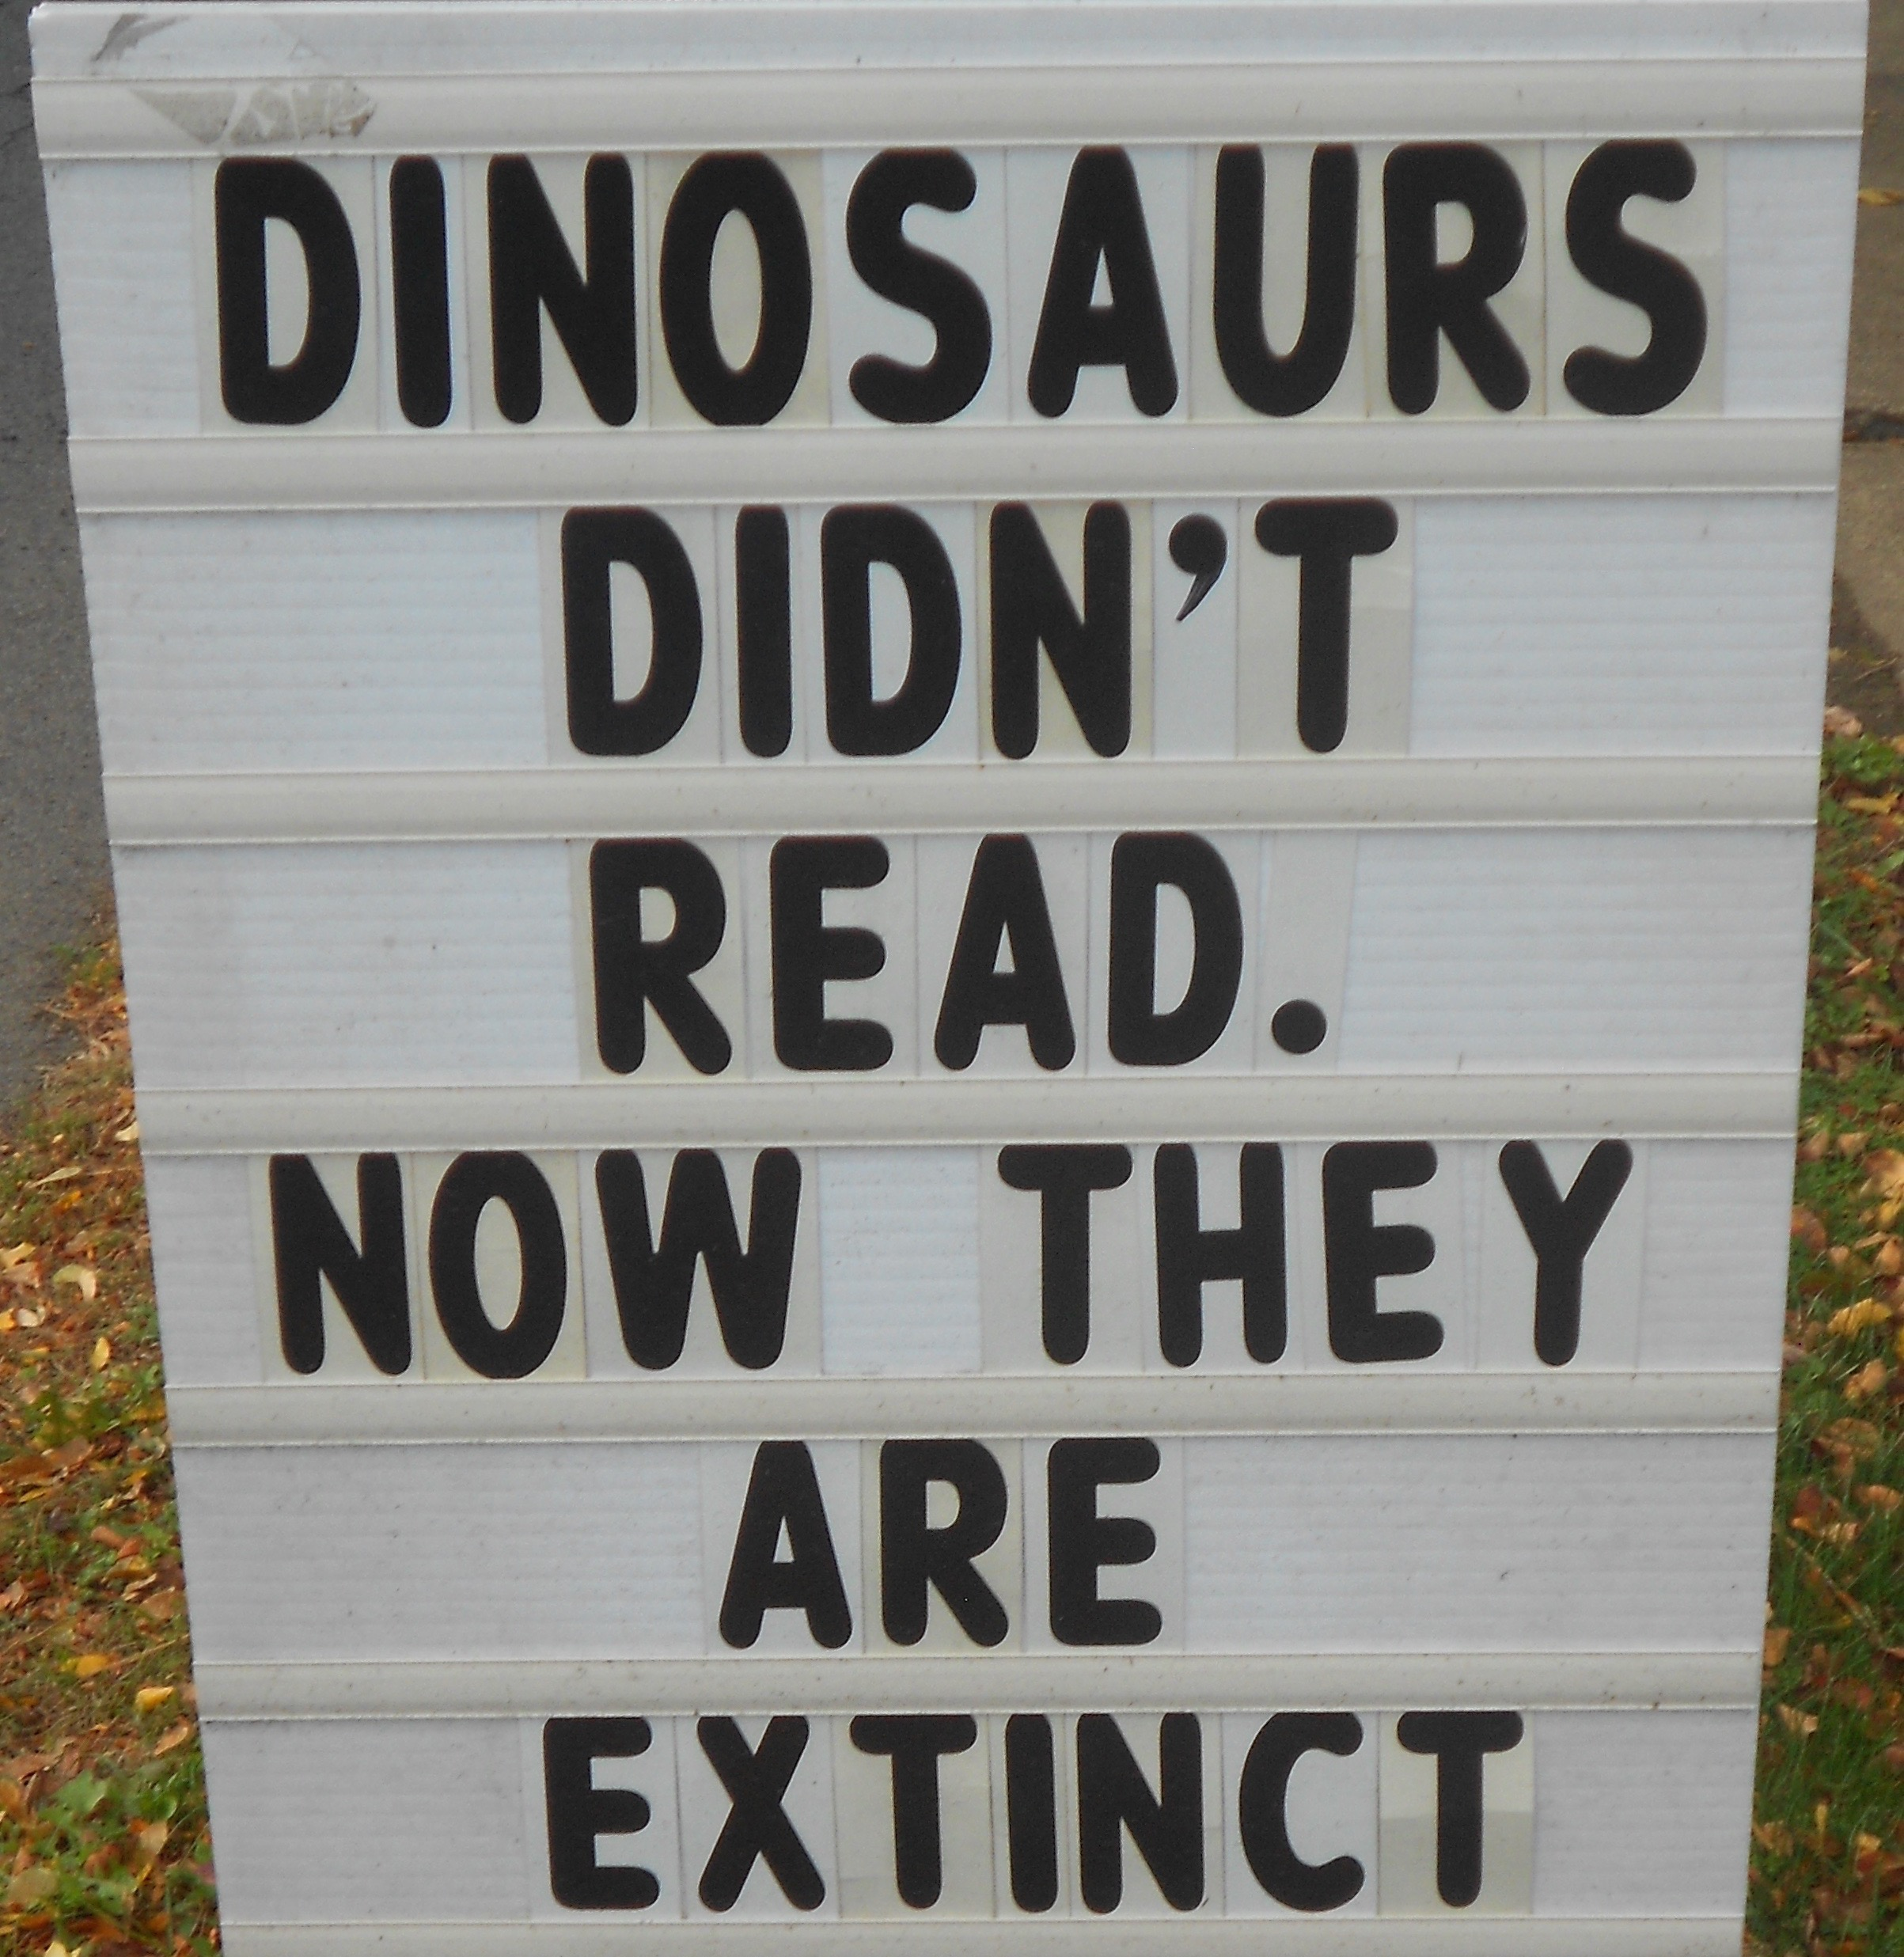 Dinosaurs didn't read; now they are extinct